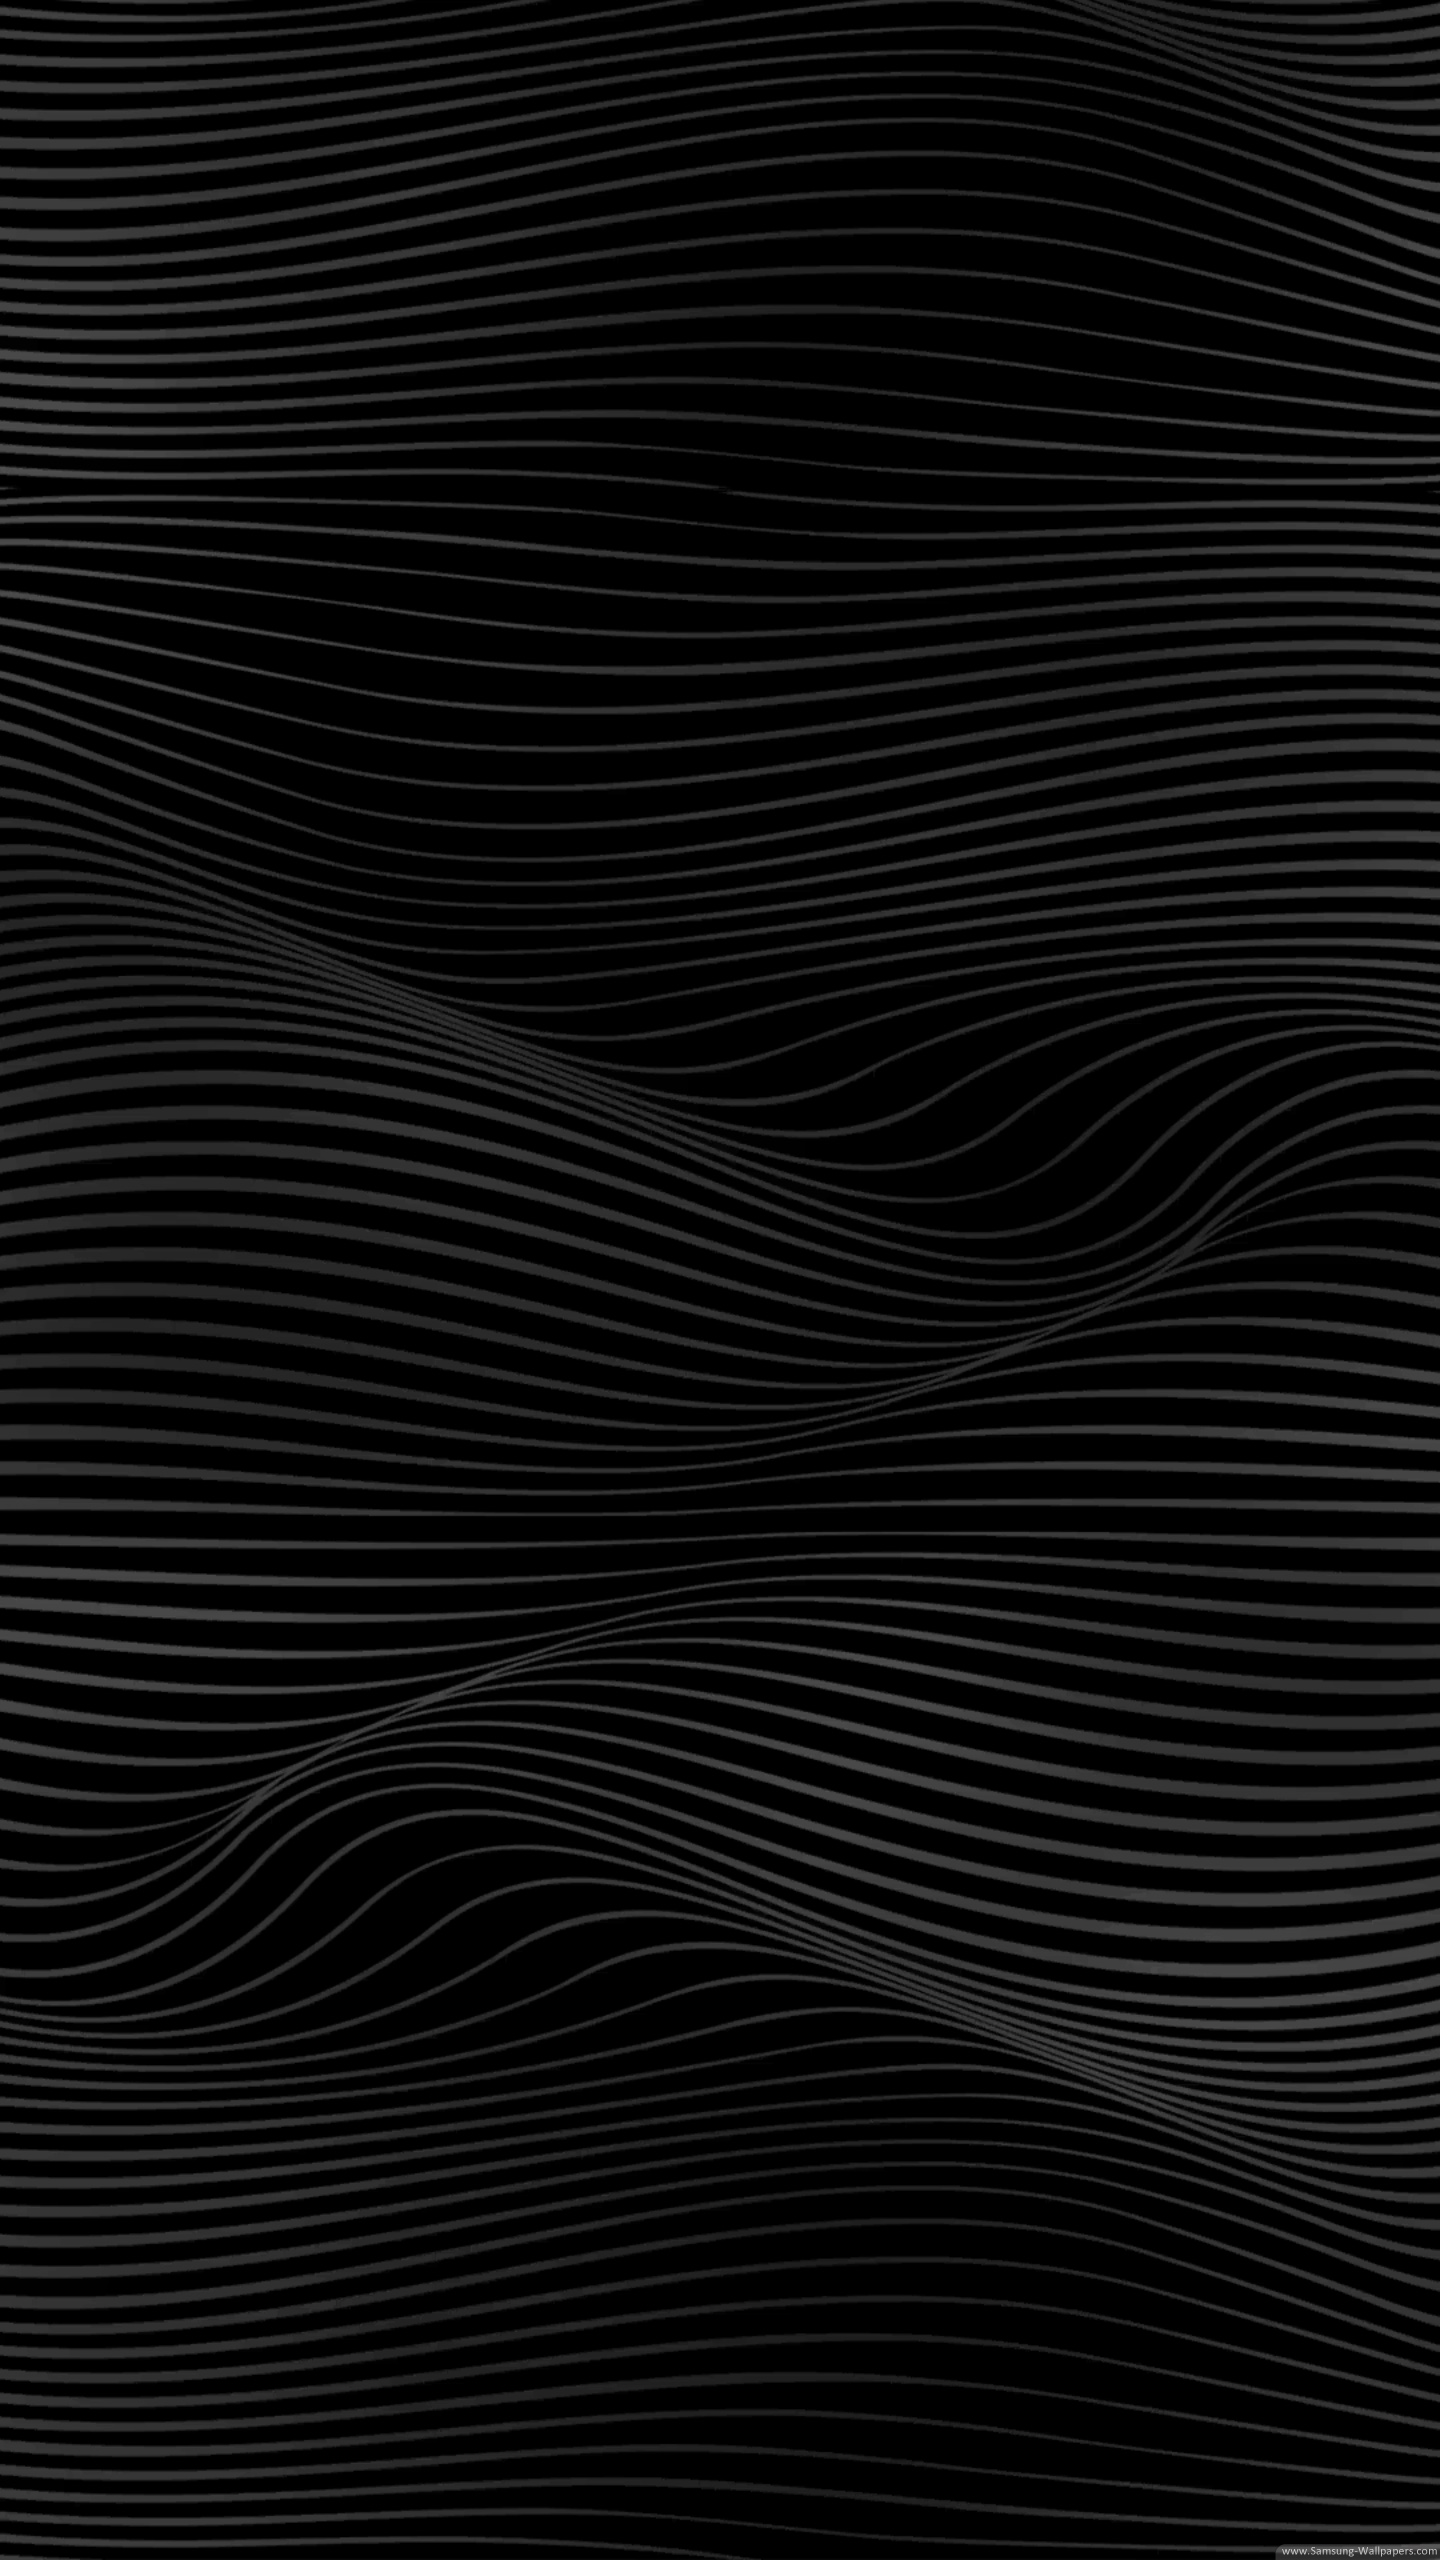 Samsung Black Wallpaper Posted By Sarah Cunningham